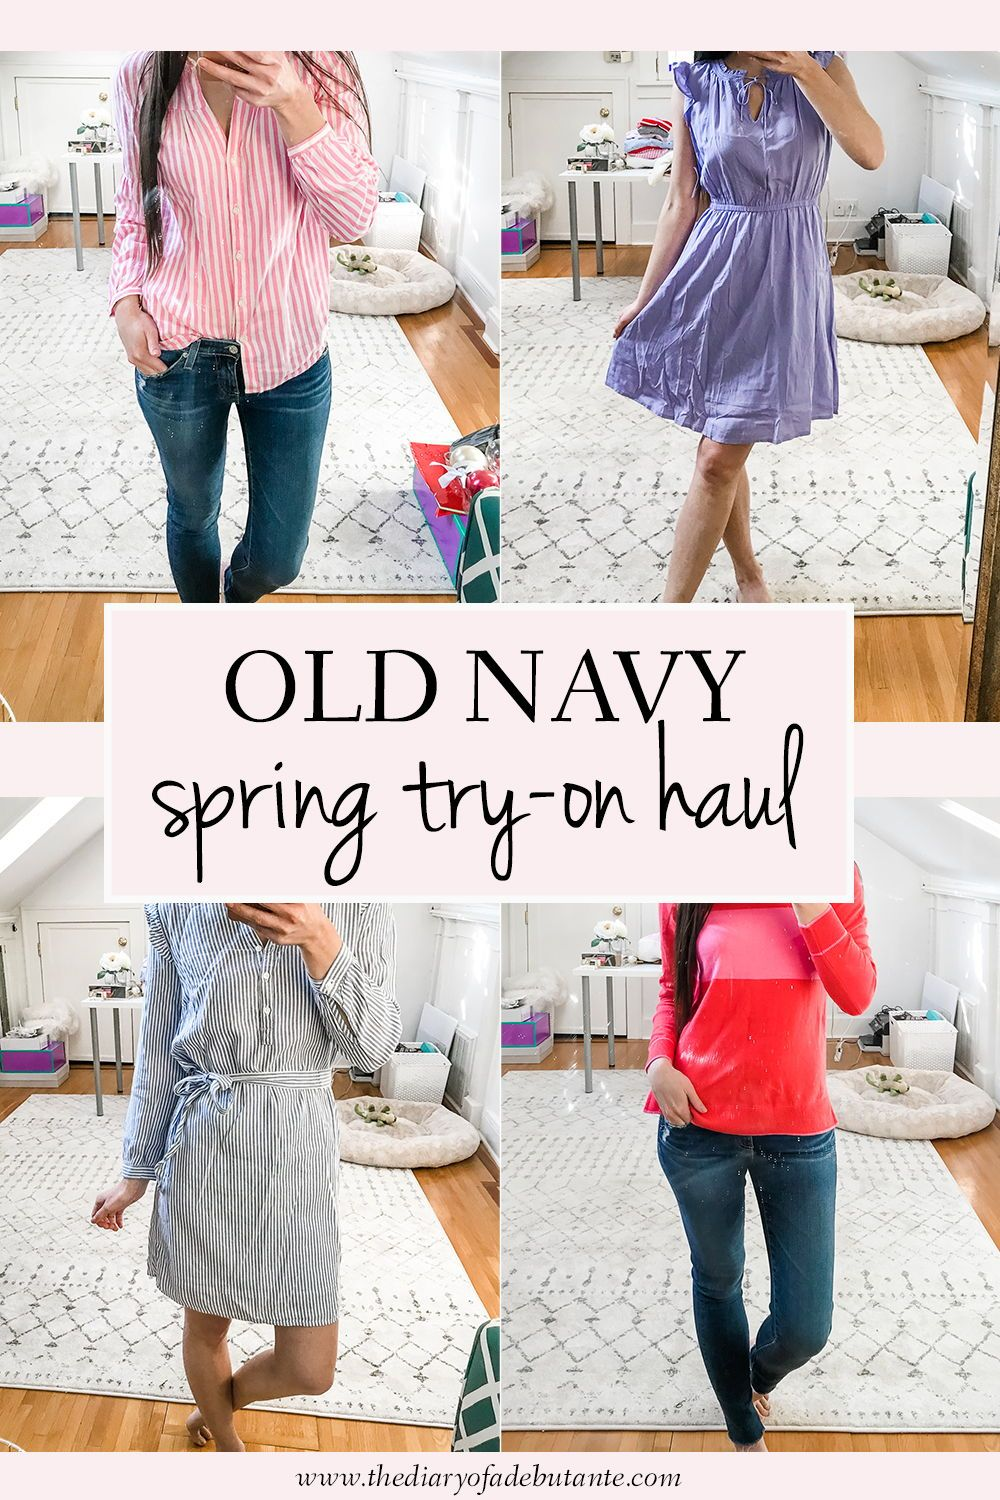 442400d6c40 The Old Navy Spring 2019 collection is to die for! So many incredible  finds-. Read it